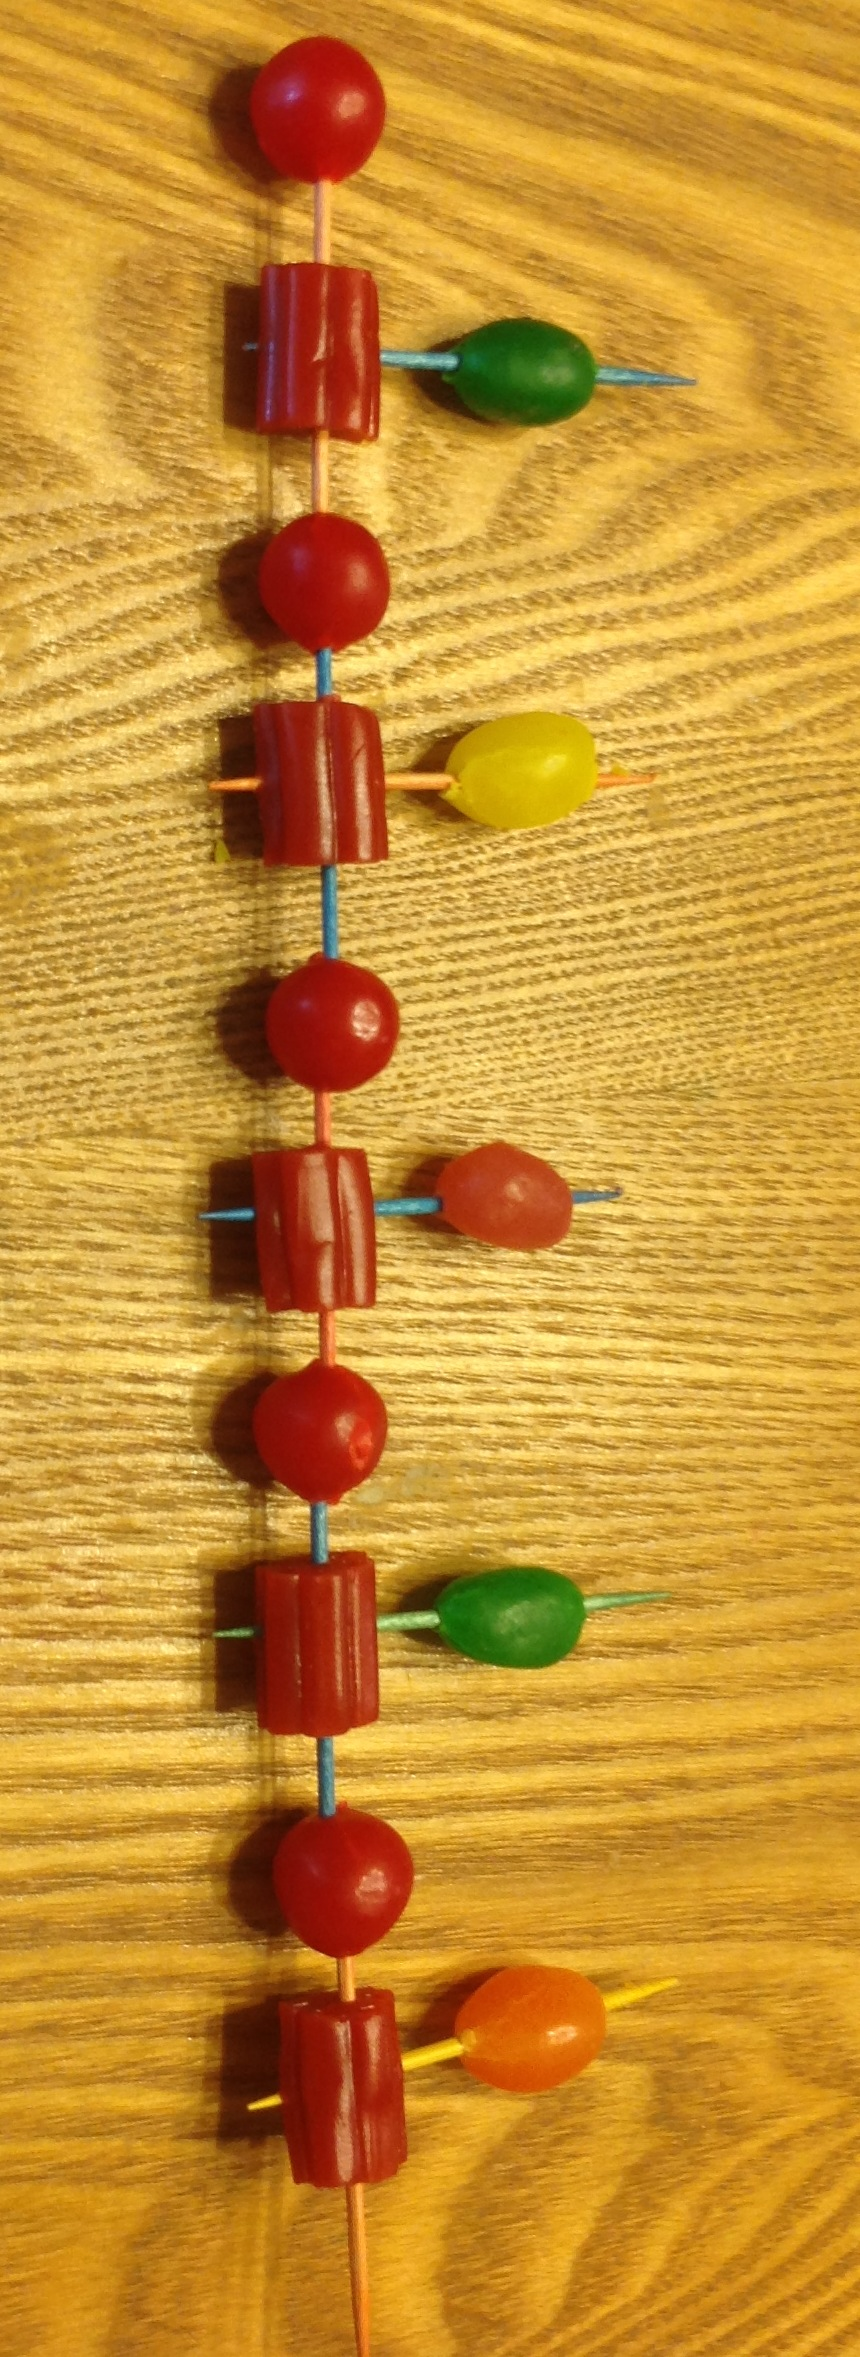 how to build a dna modelout of licorice